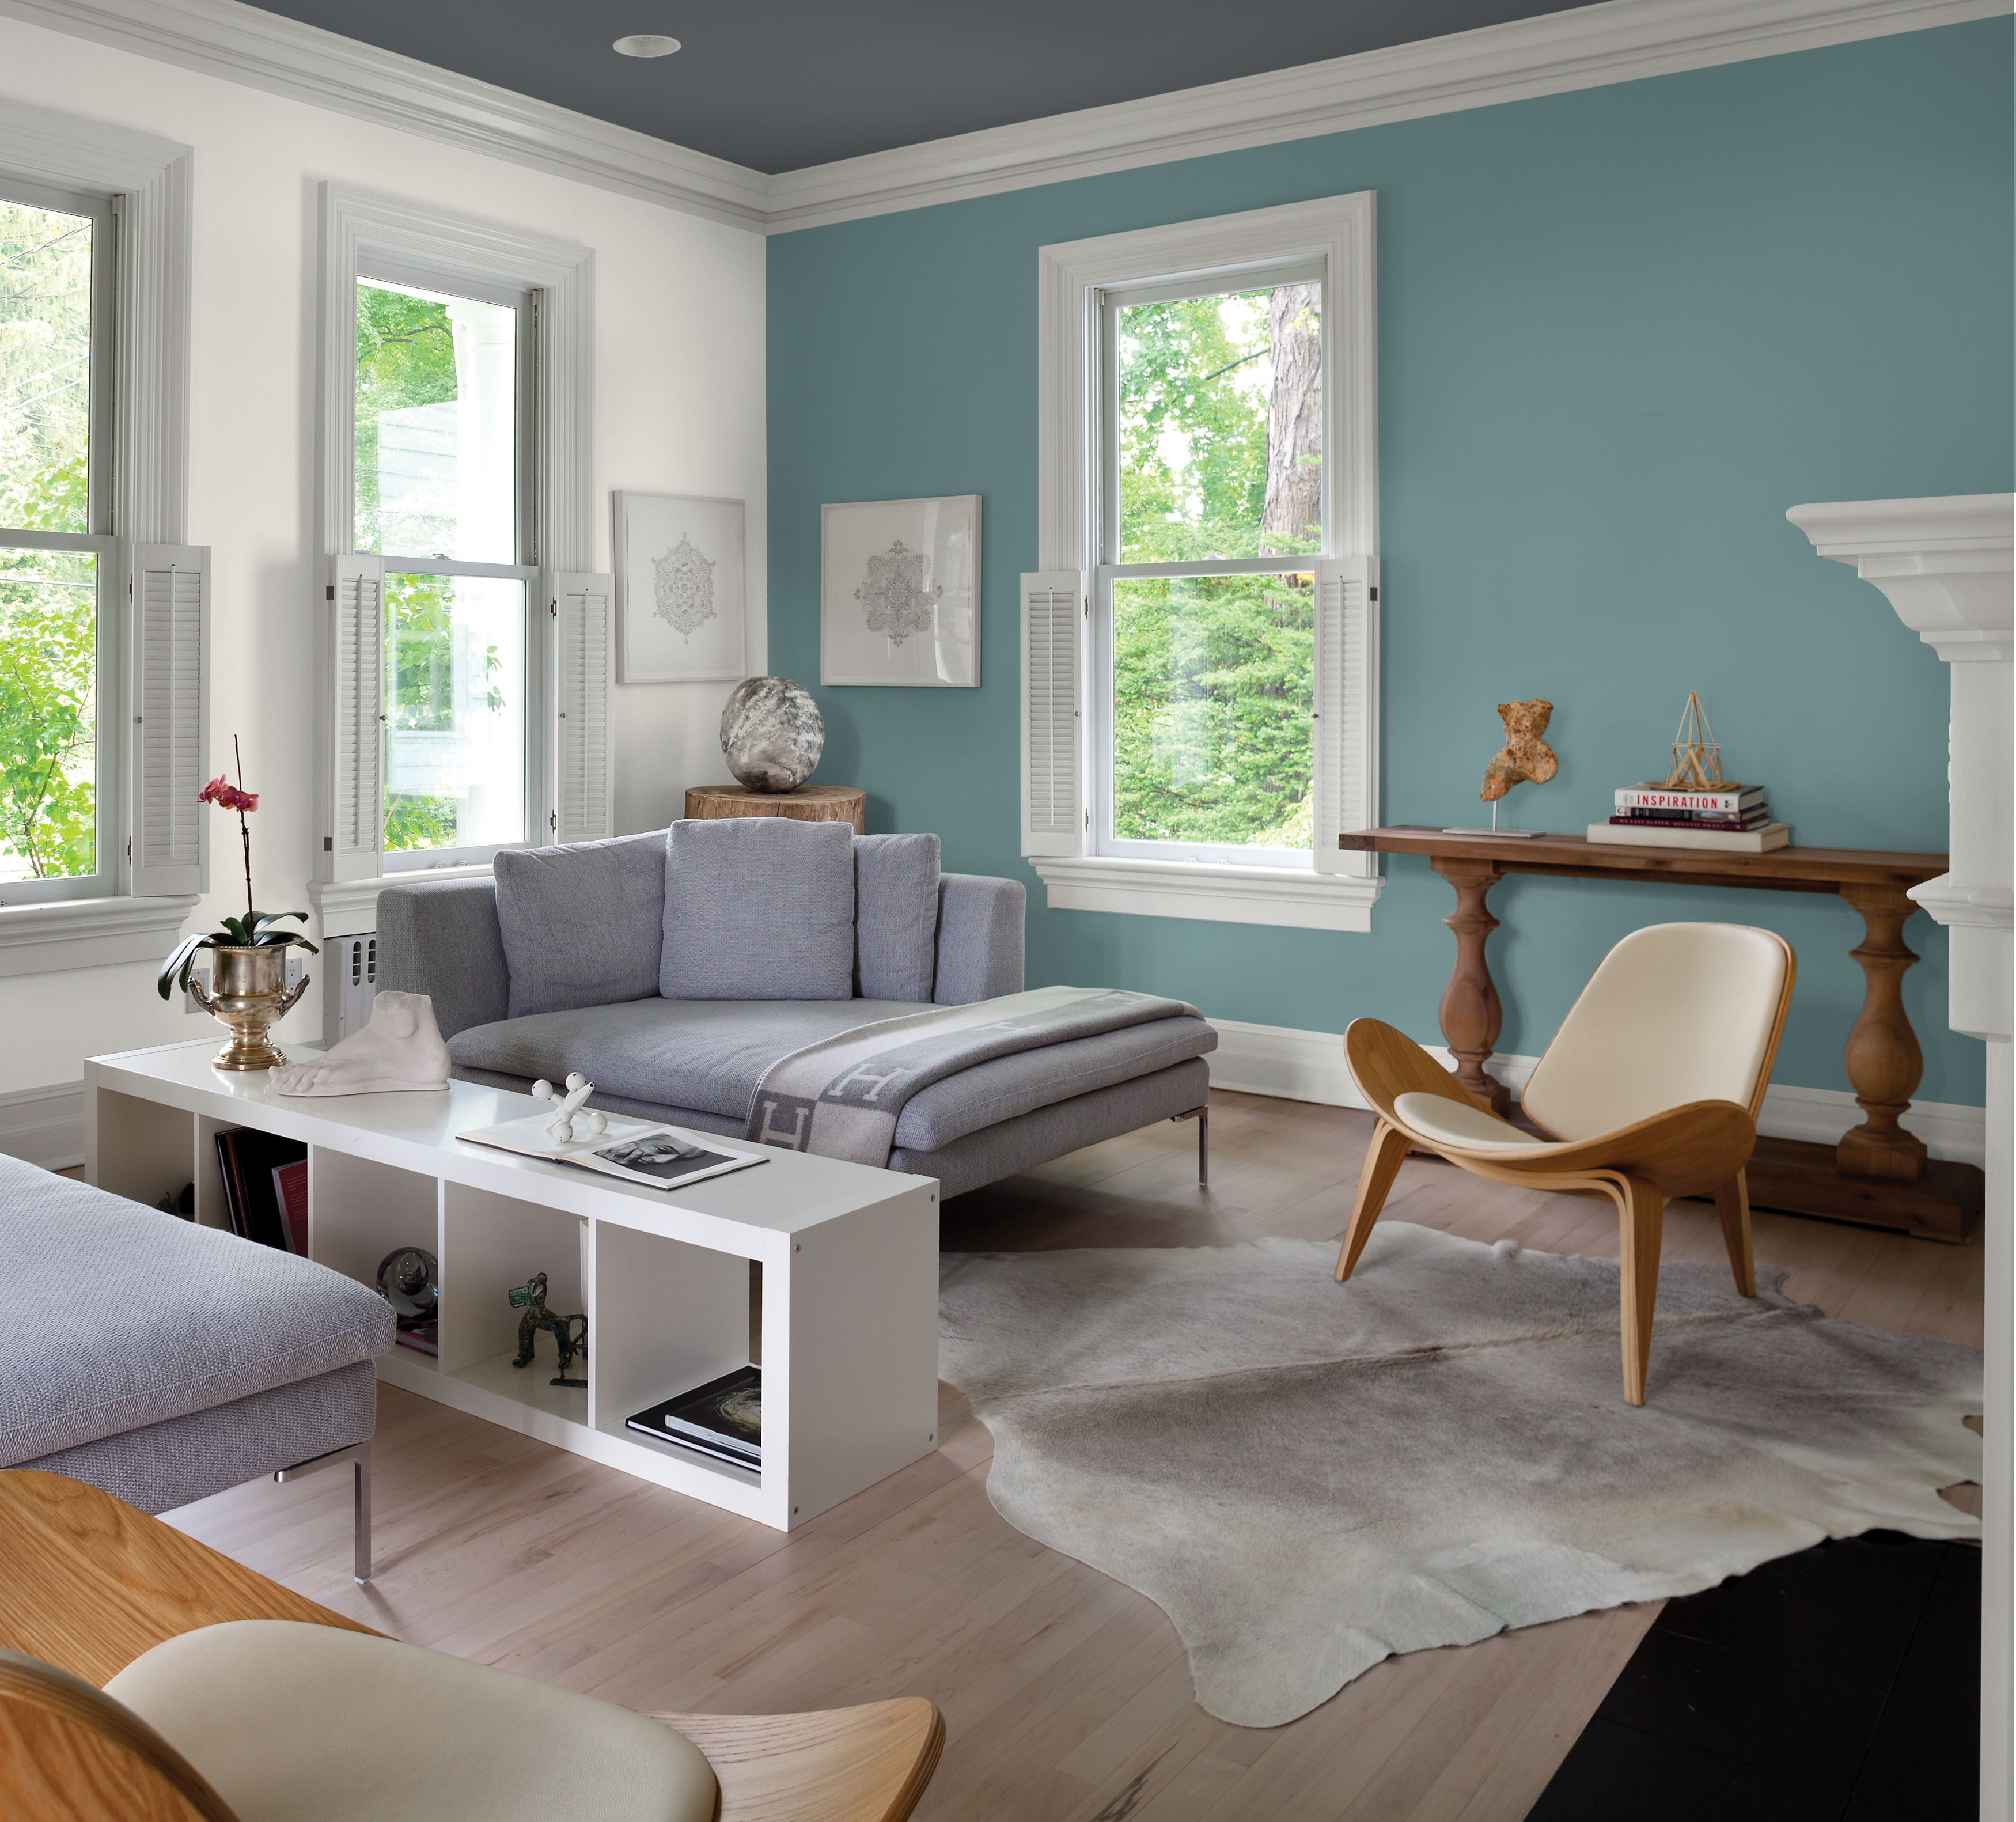 Looking For Living Room Ideas? Introspective